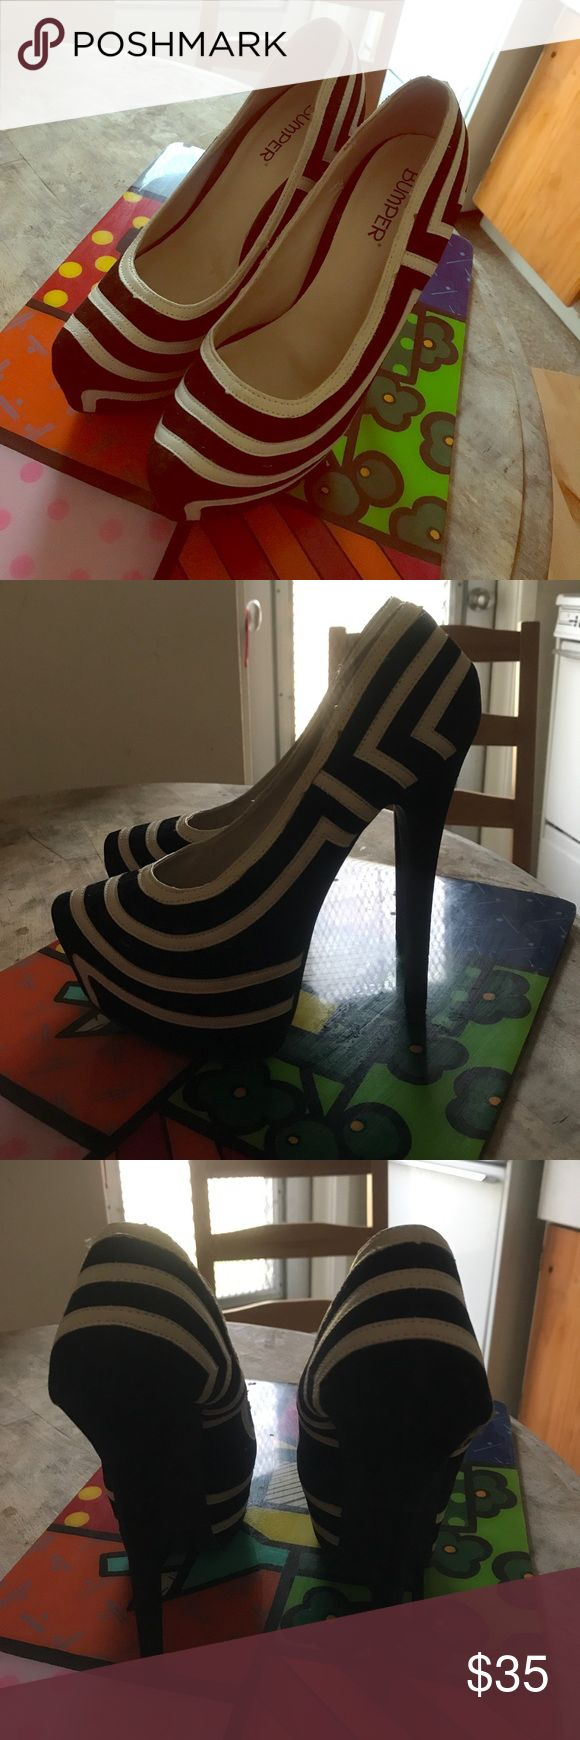 Black and white striped pumps Bumper brand, size 9 comfy Shoes Platforms